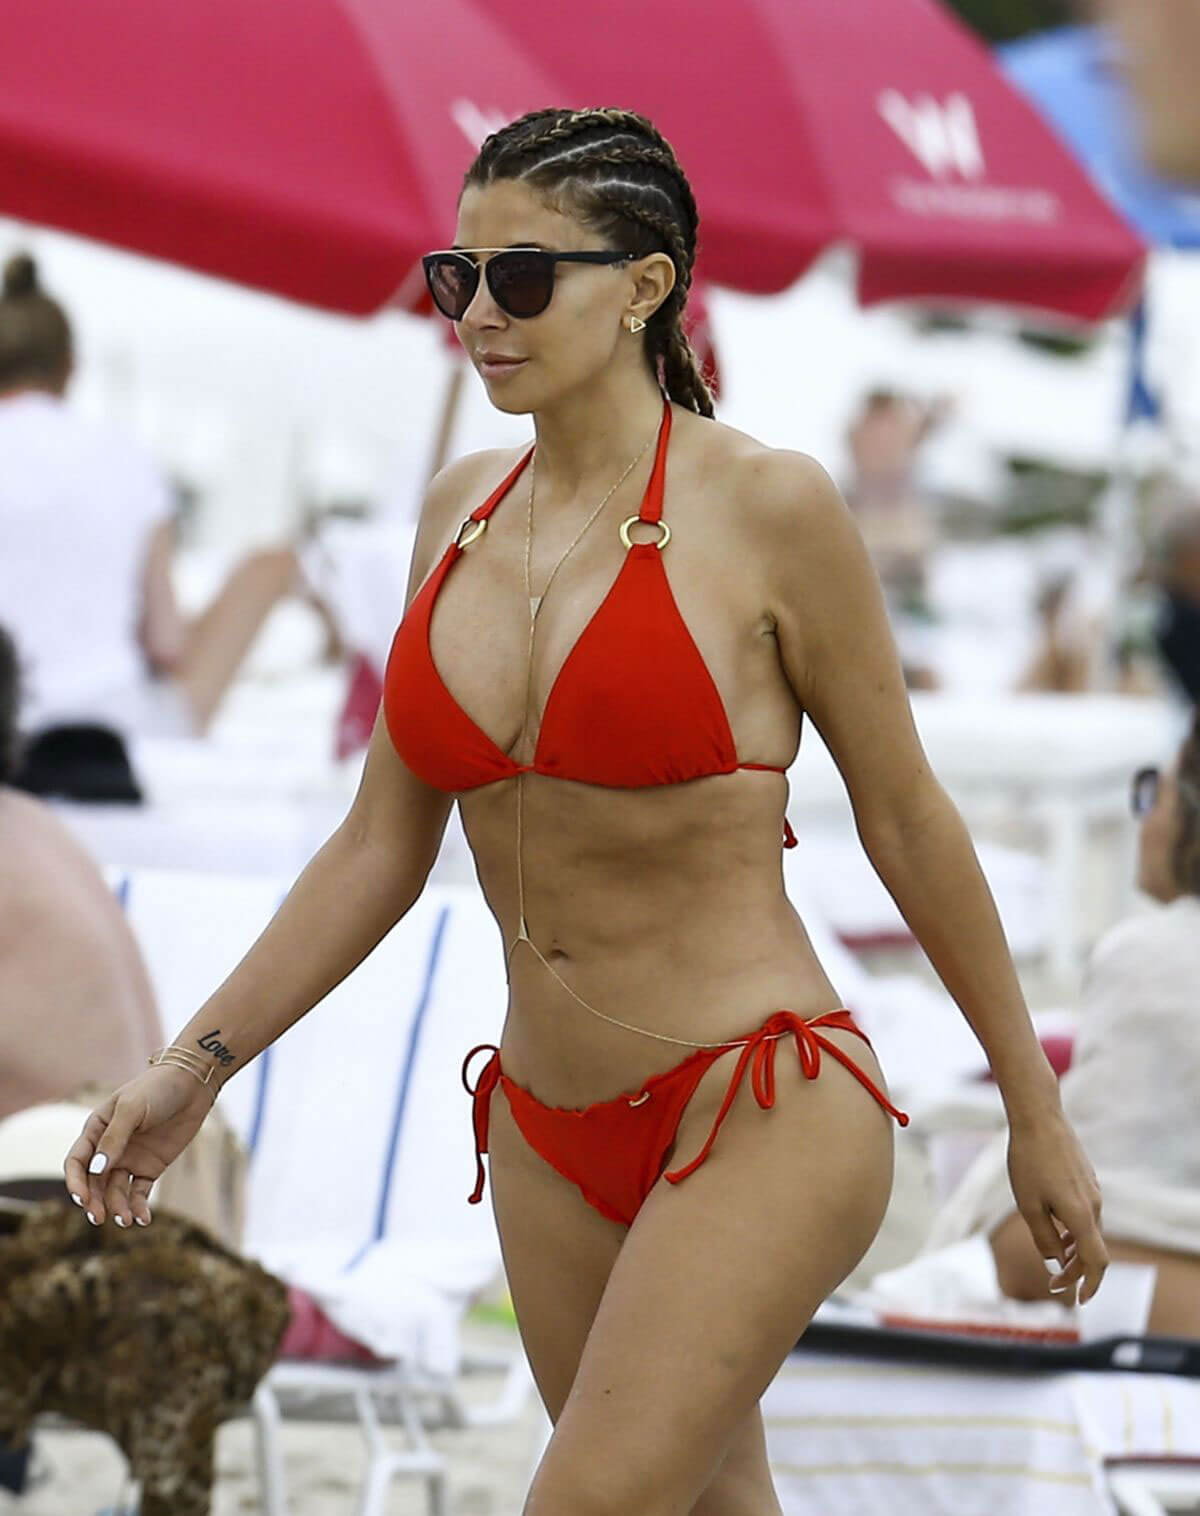 Larsa Pippen in Bikini at a Beach in Miami